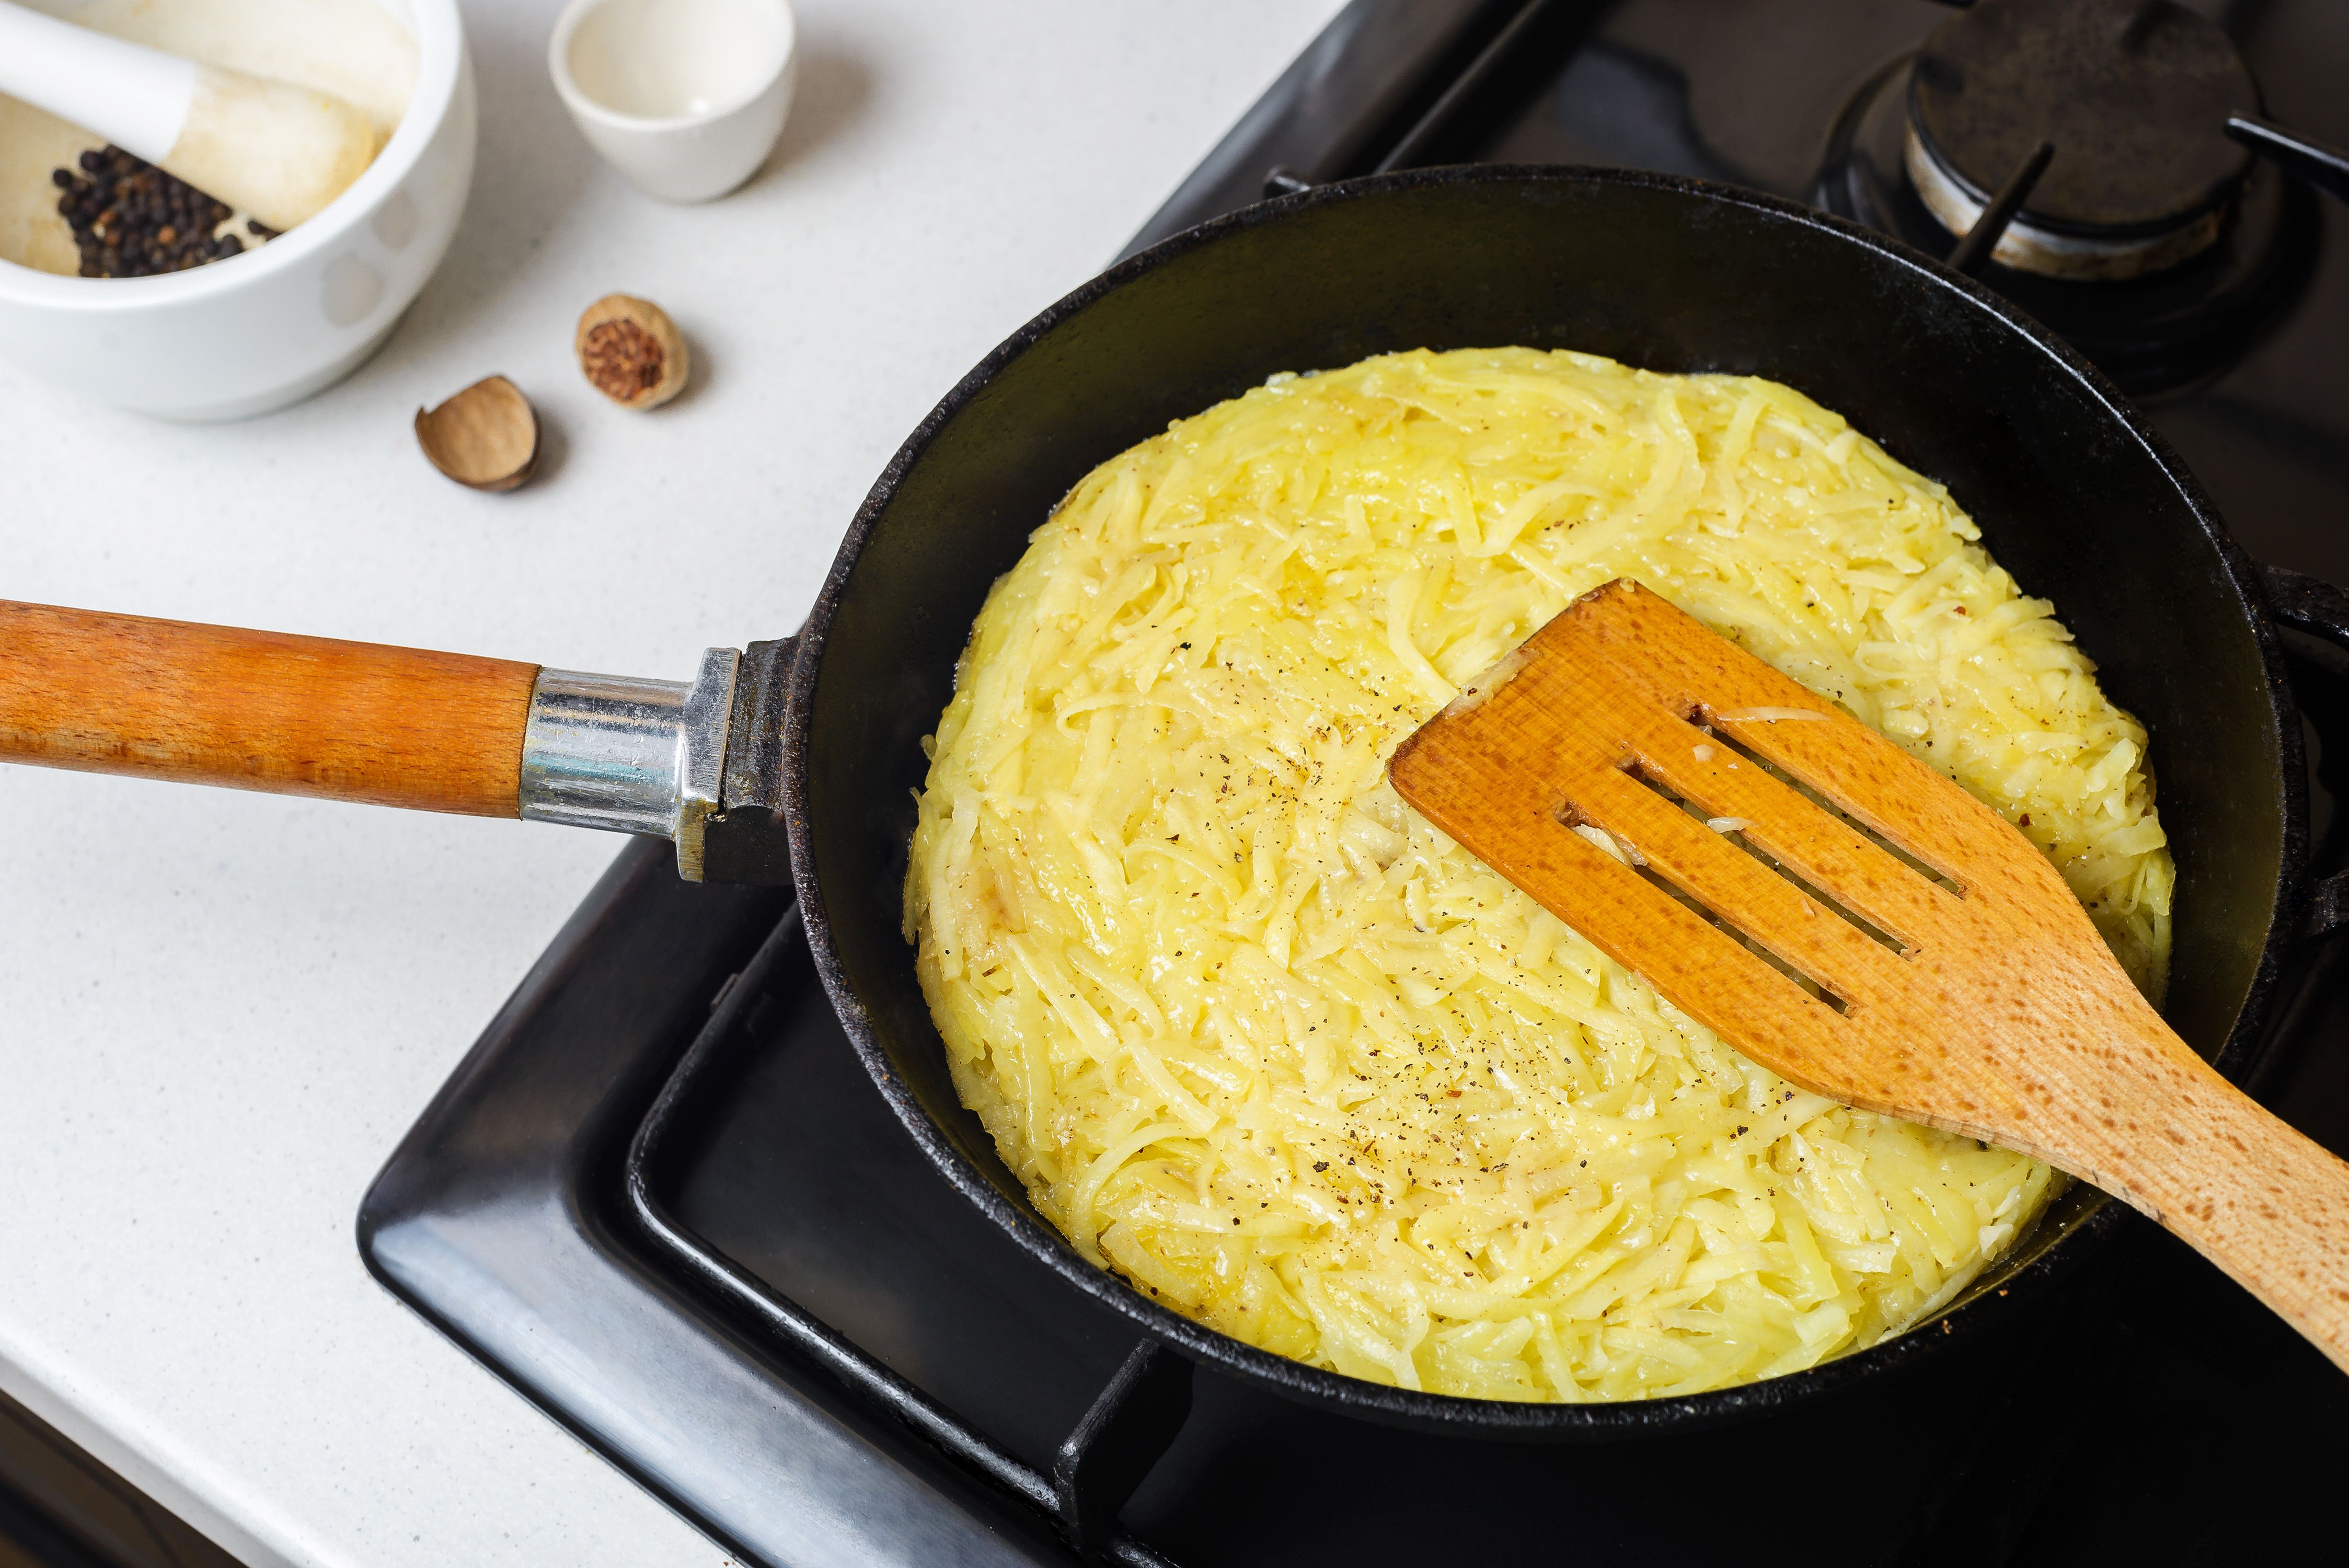 Grated potatoes frying in a skillet